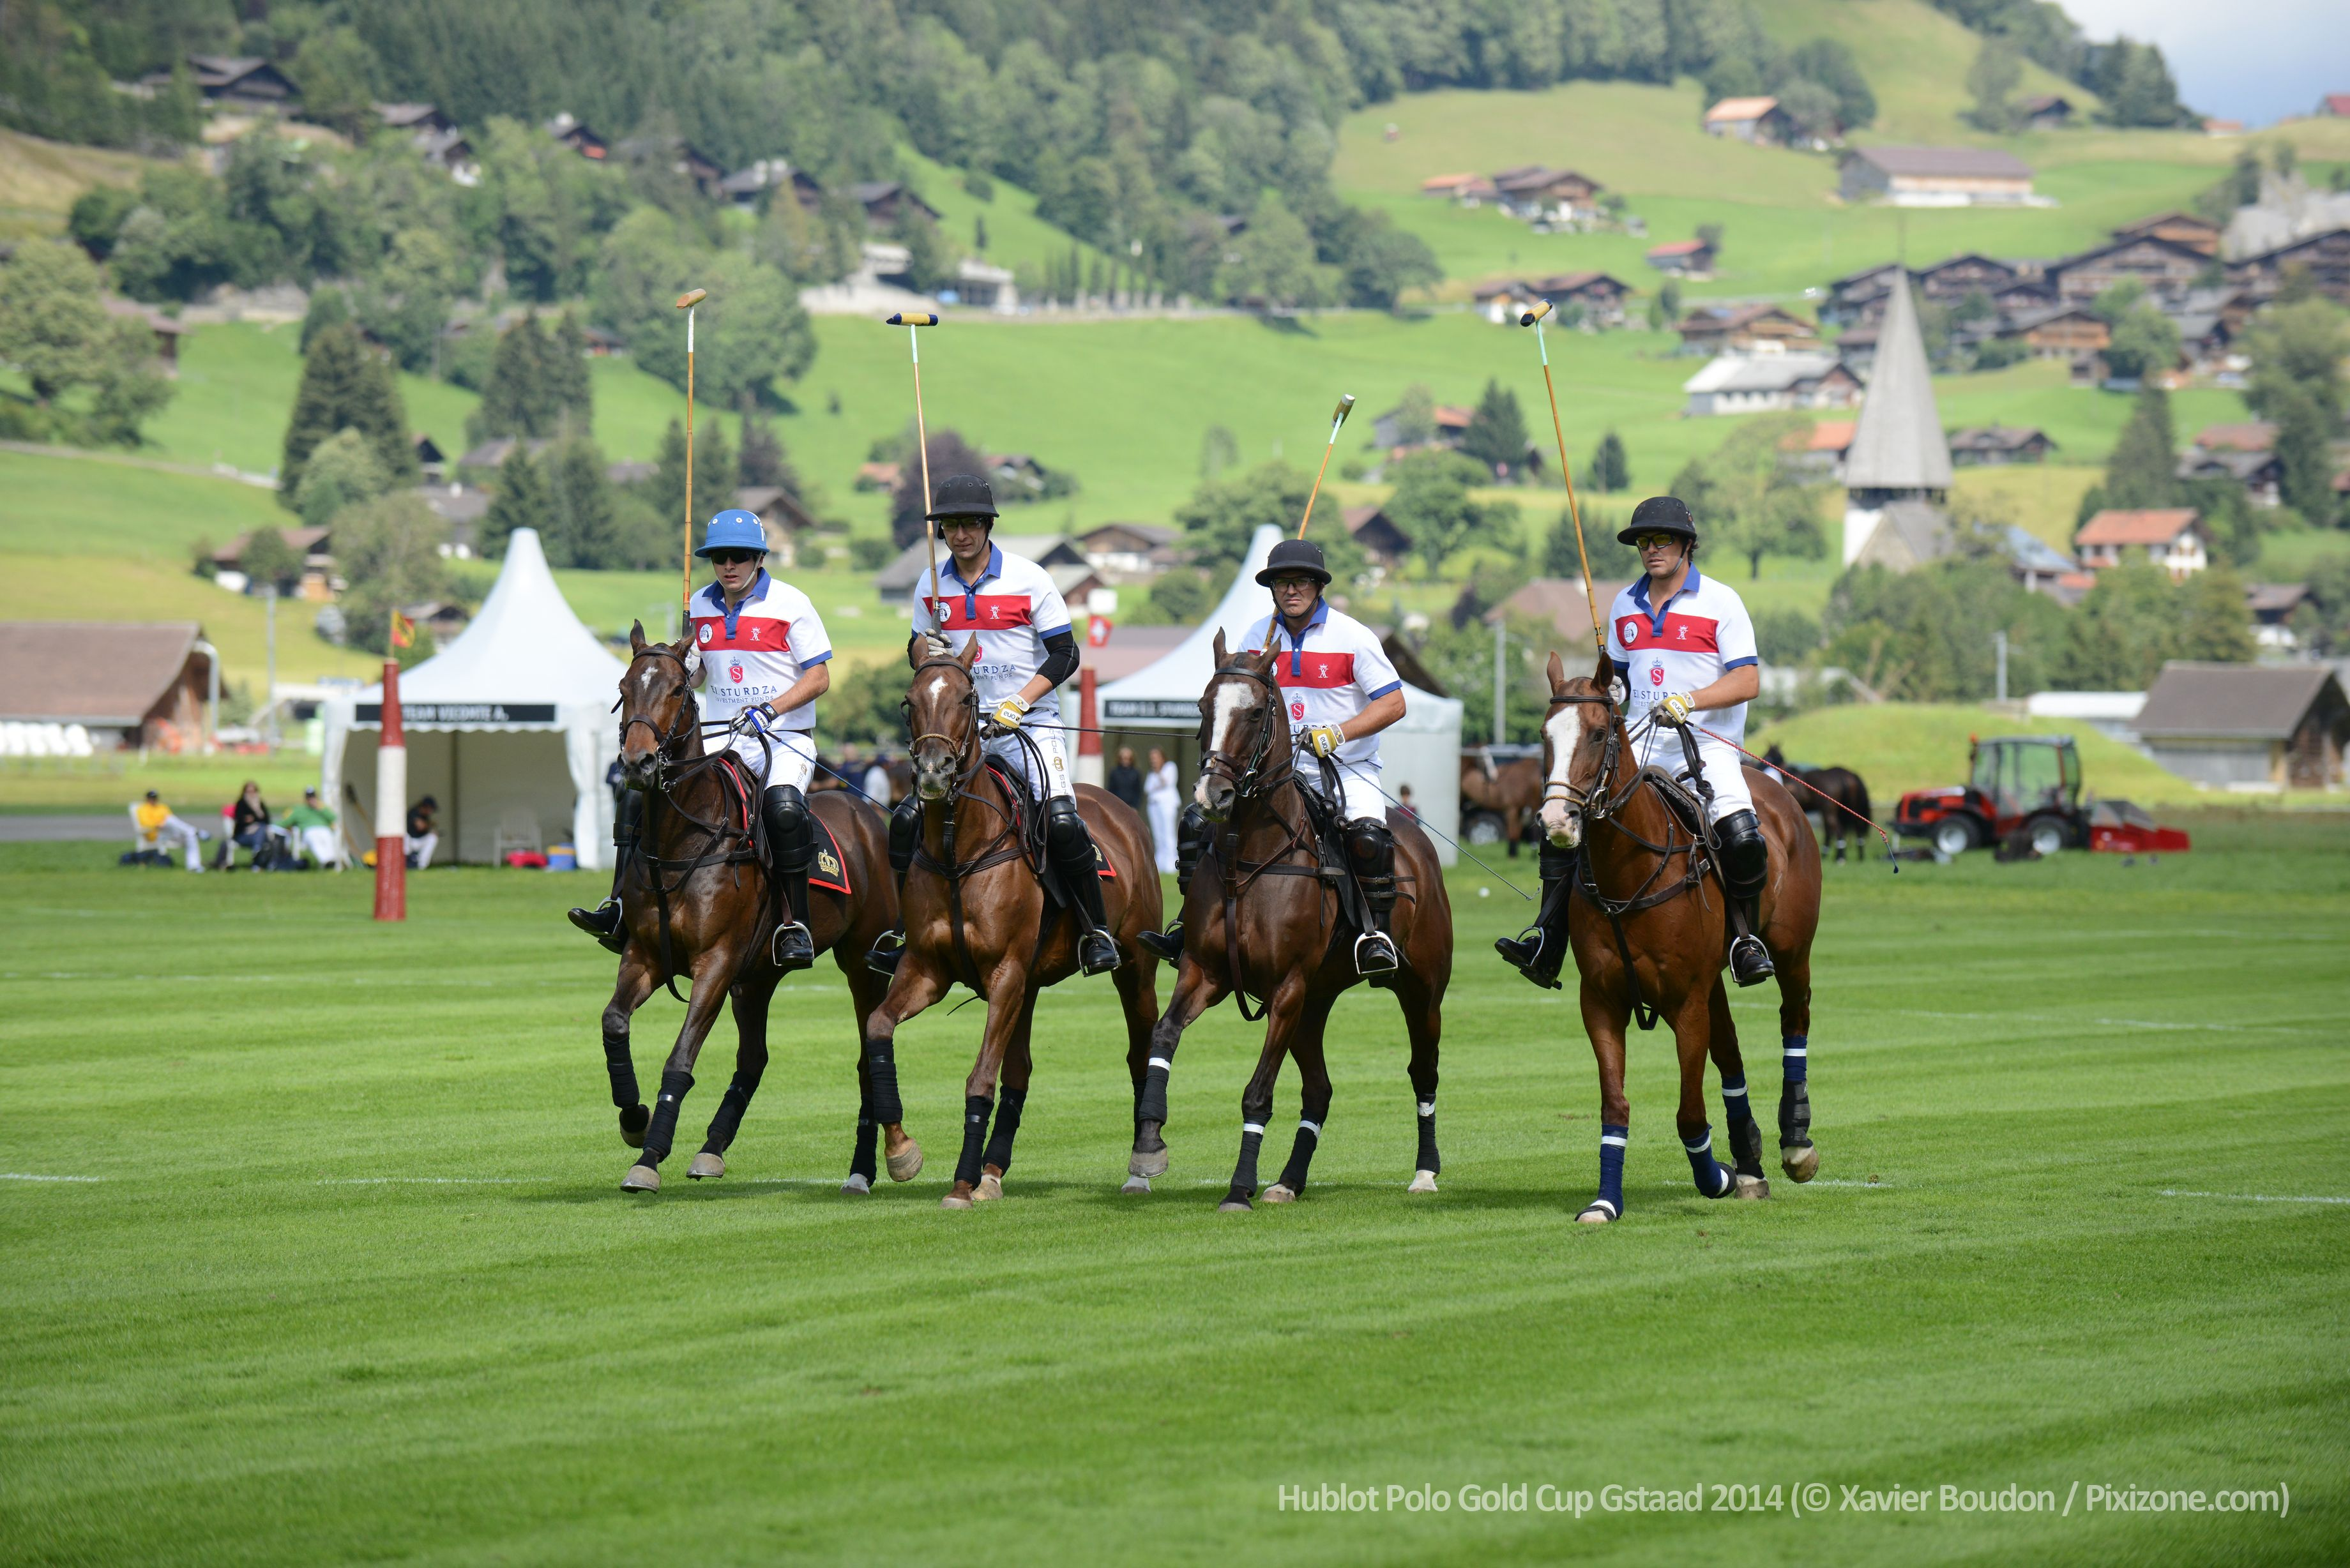 Hublot Polo Gold Cup Gstaad